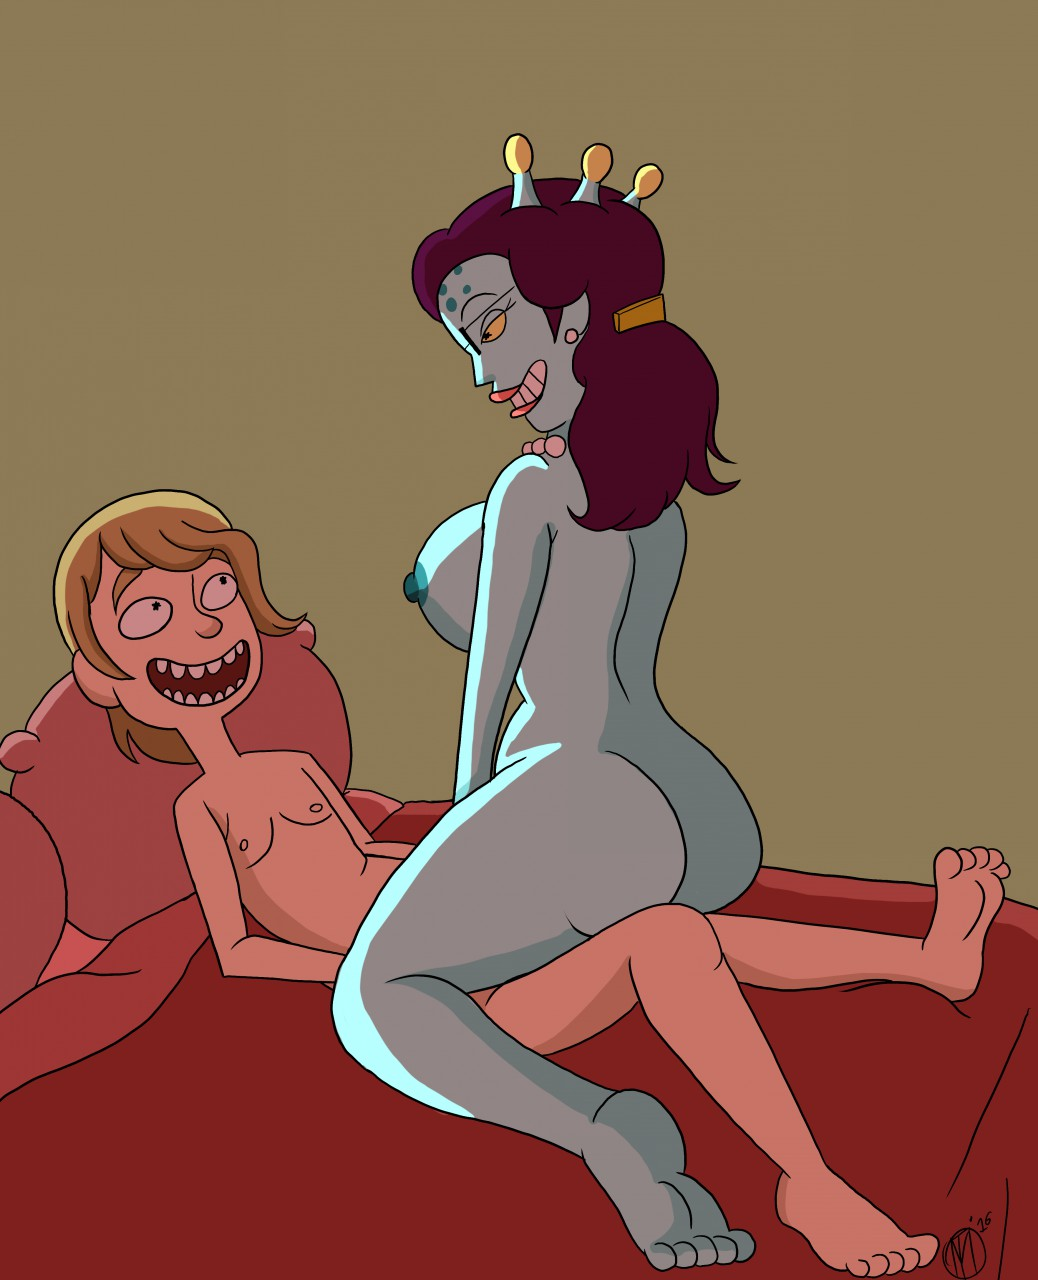 morty a xxx rick way and back home Five nights at freddy's sex comics